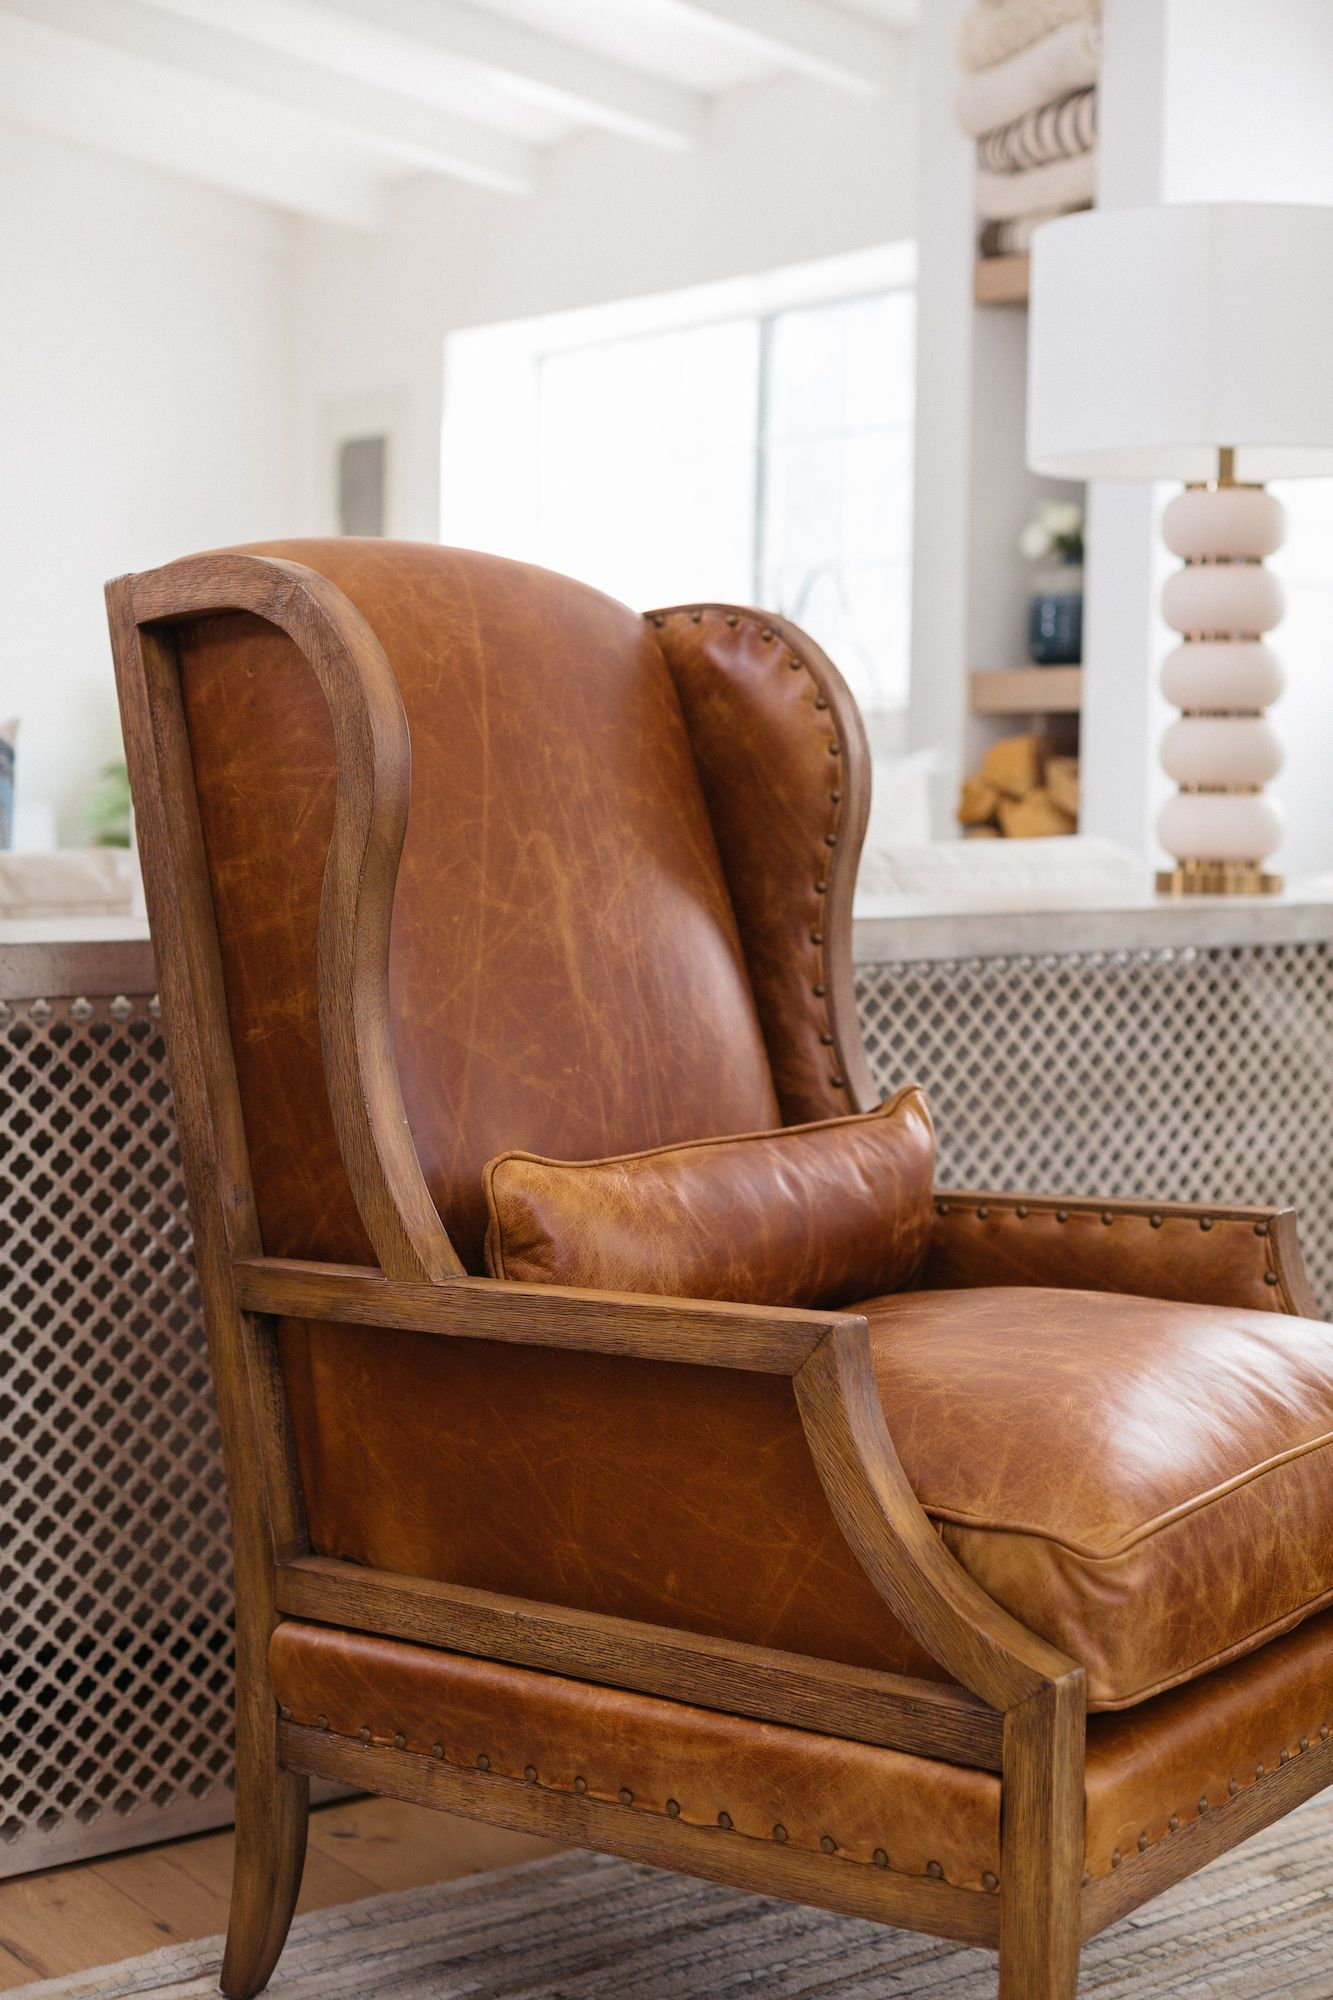 Nailhead Trimmed Leather 28 Club Chair In Antique Hickory Mathis Brothers Furniture Living Room Decor Traditional Furniture Club Chairs Leather nail head chair